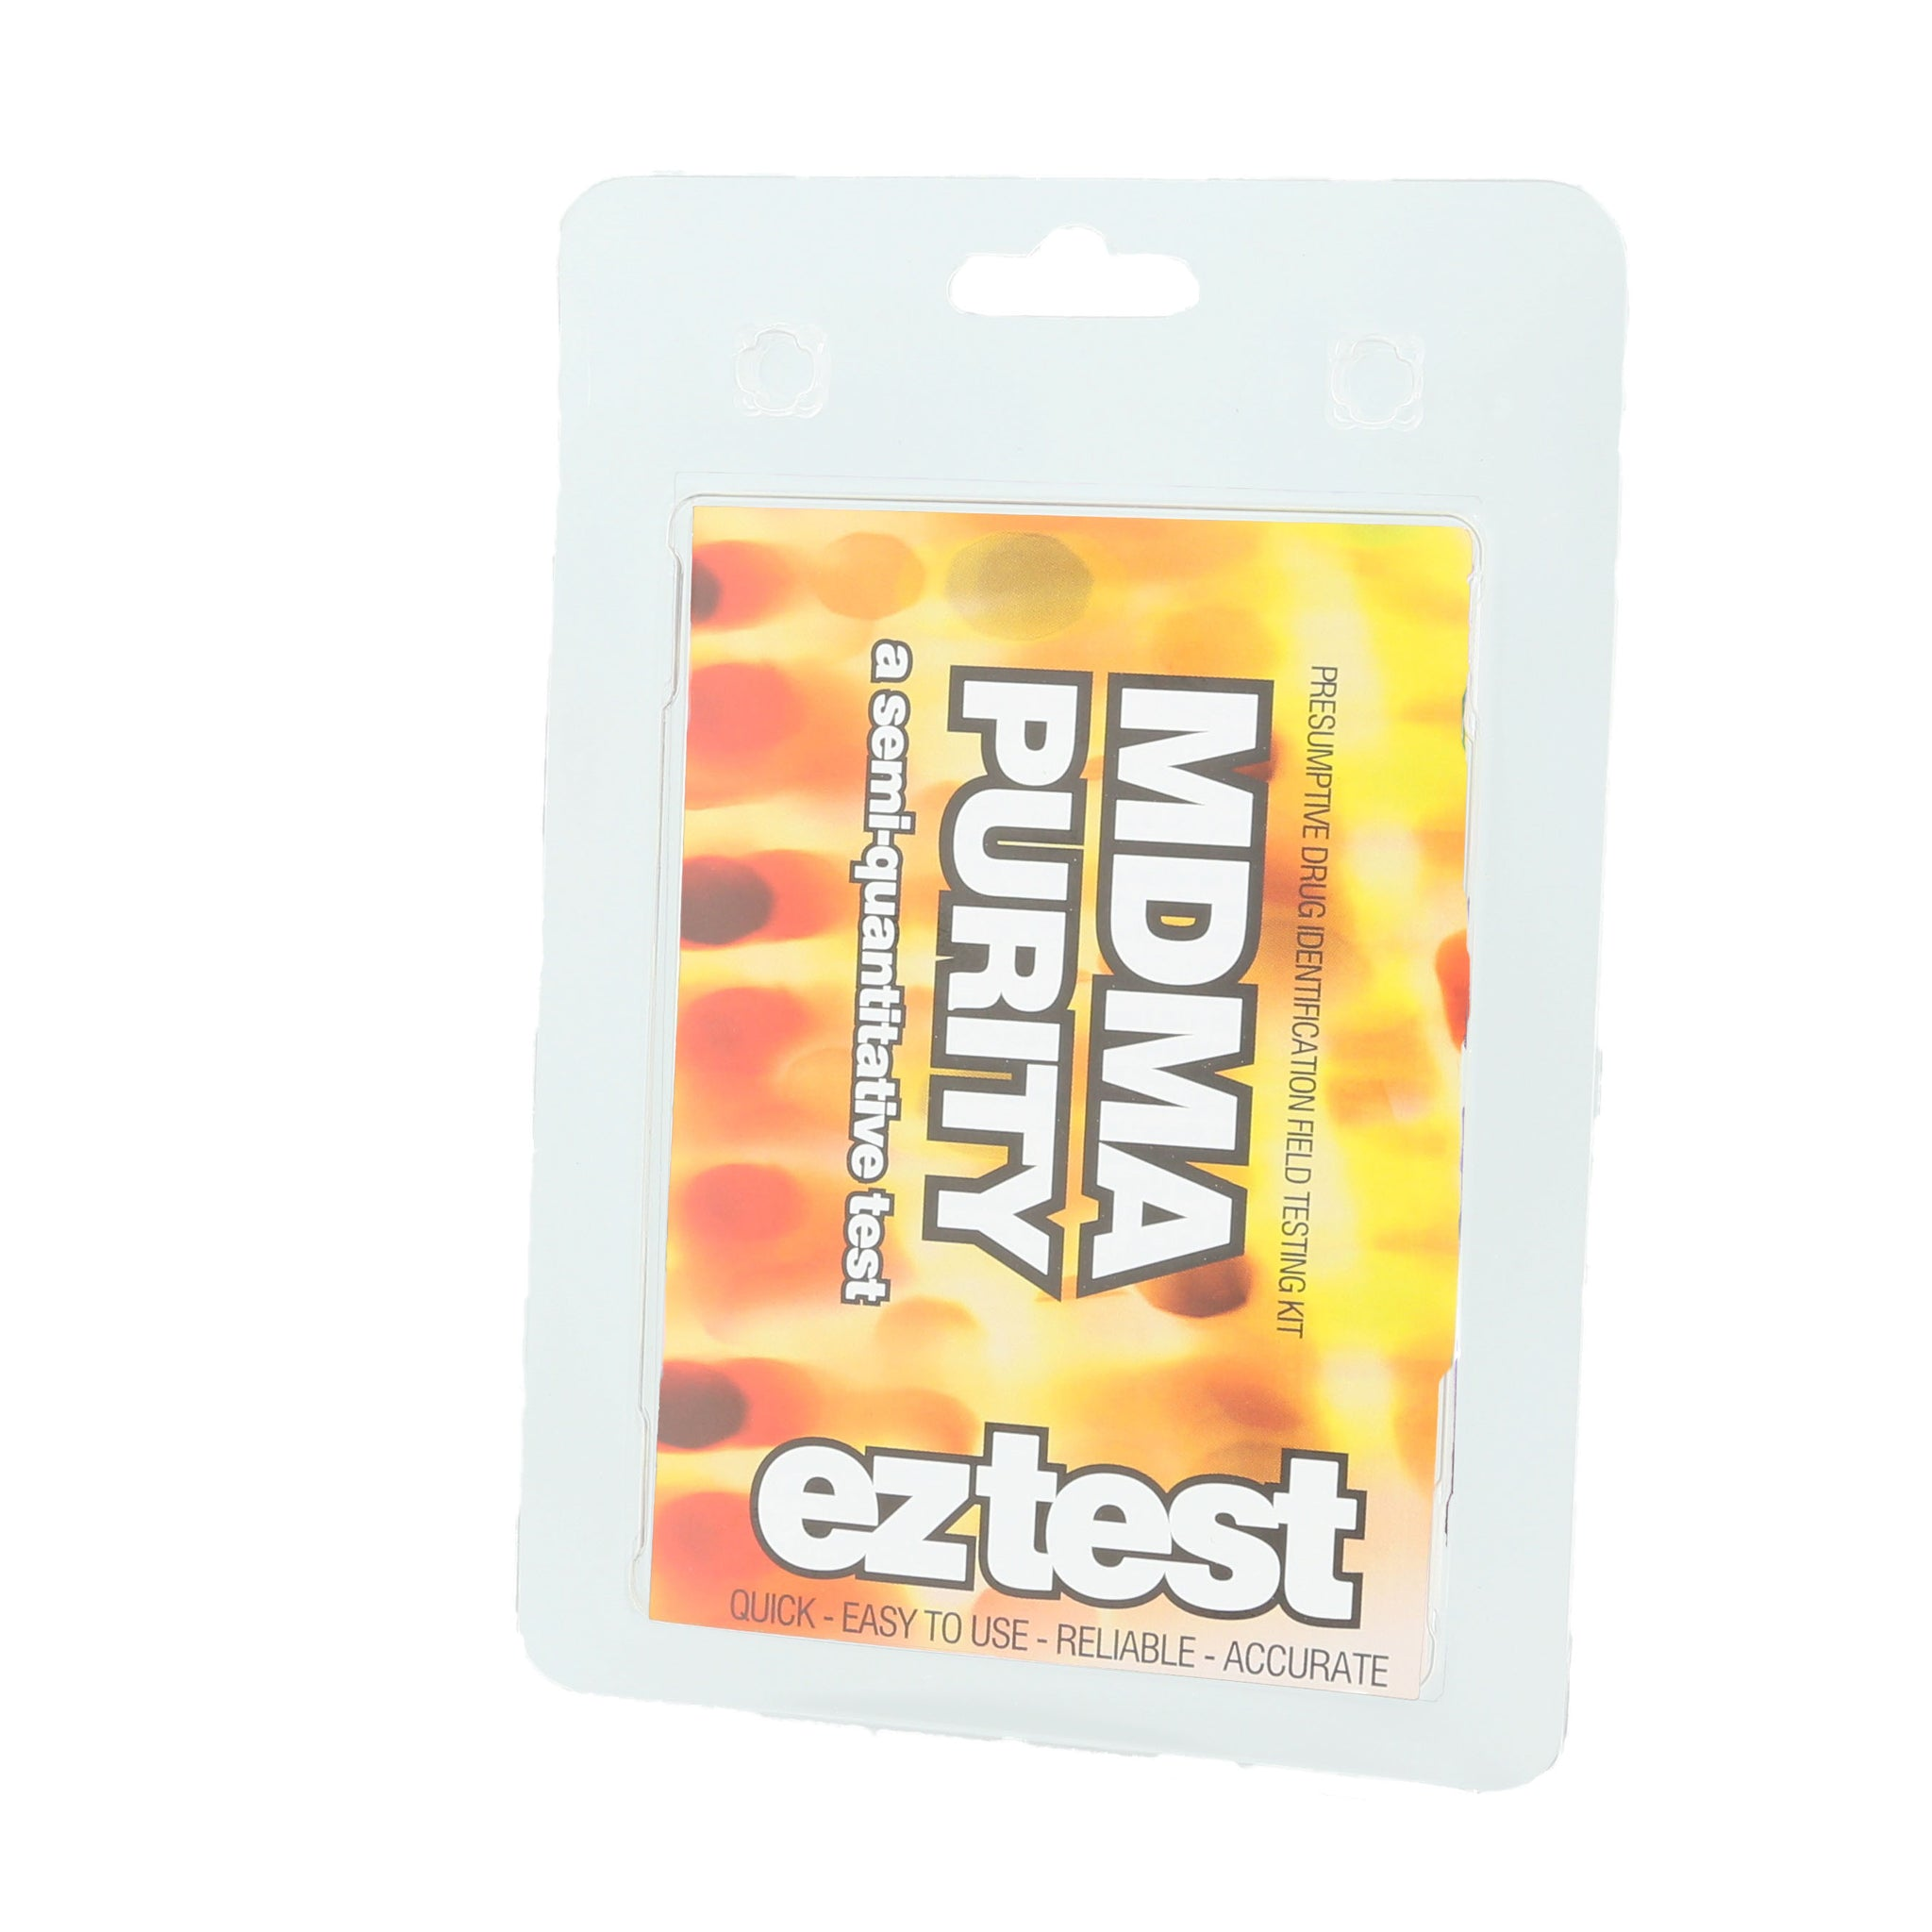 Eztest Tube for MDMA Purity - Cheeky Ninjas